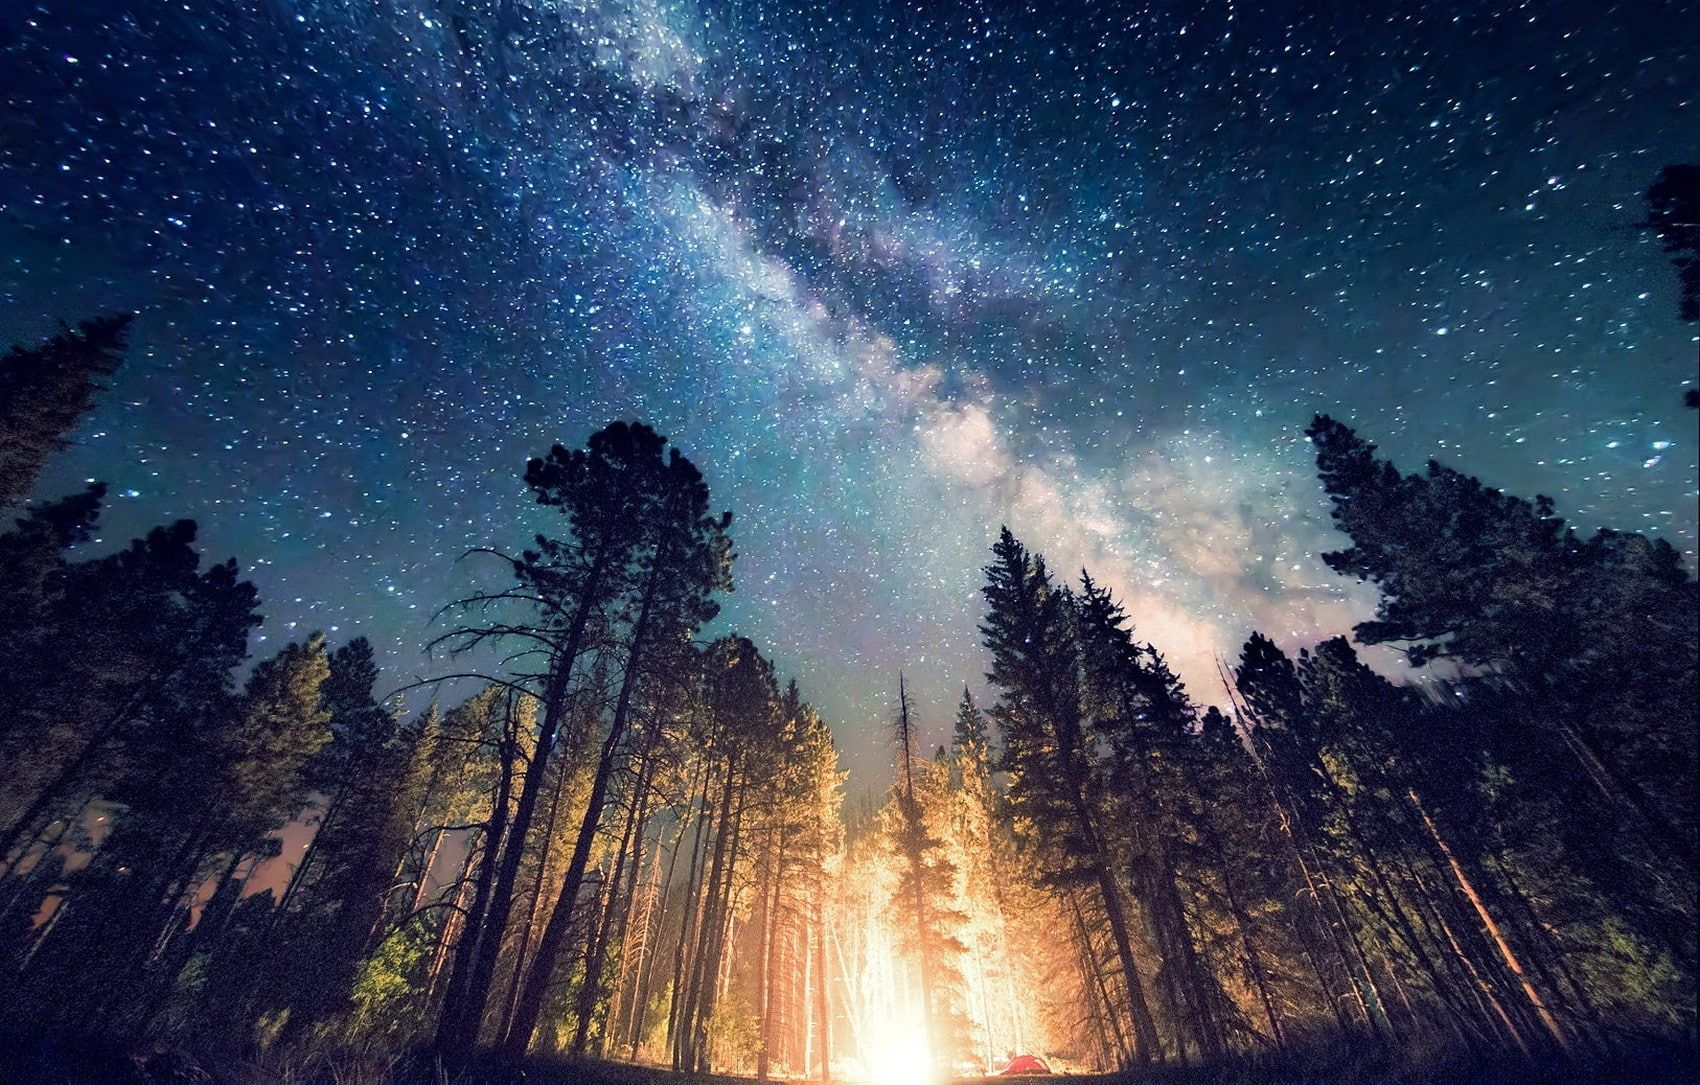 Long Exposure Starry Night Milky Way Galaxy Nature Camping Forest Landscape New Mexico Lights Tr In 2021 Landscape Wallpaper Nature Wallpaper Nature Backgrounds